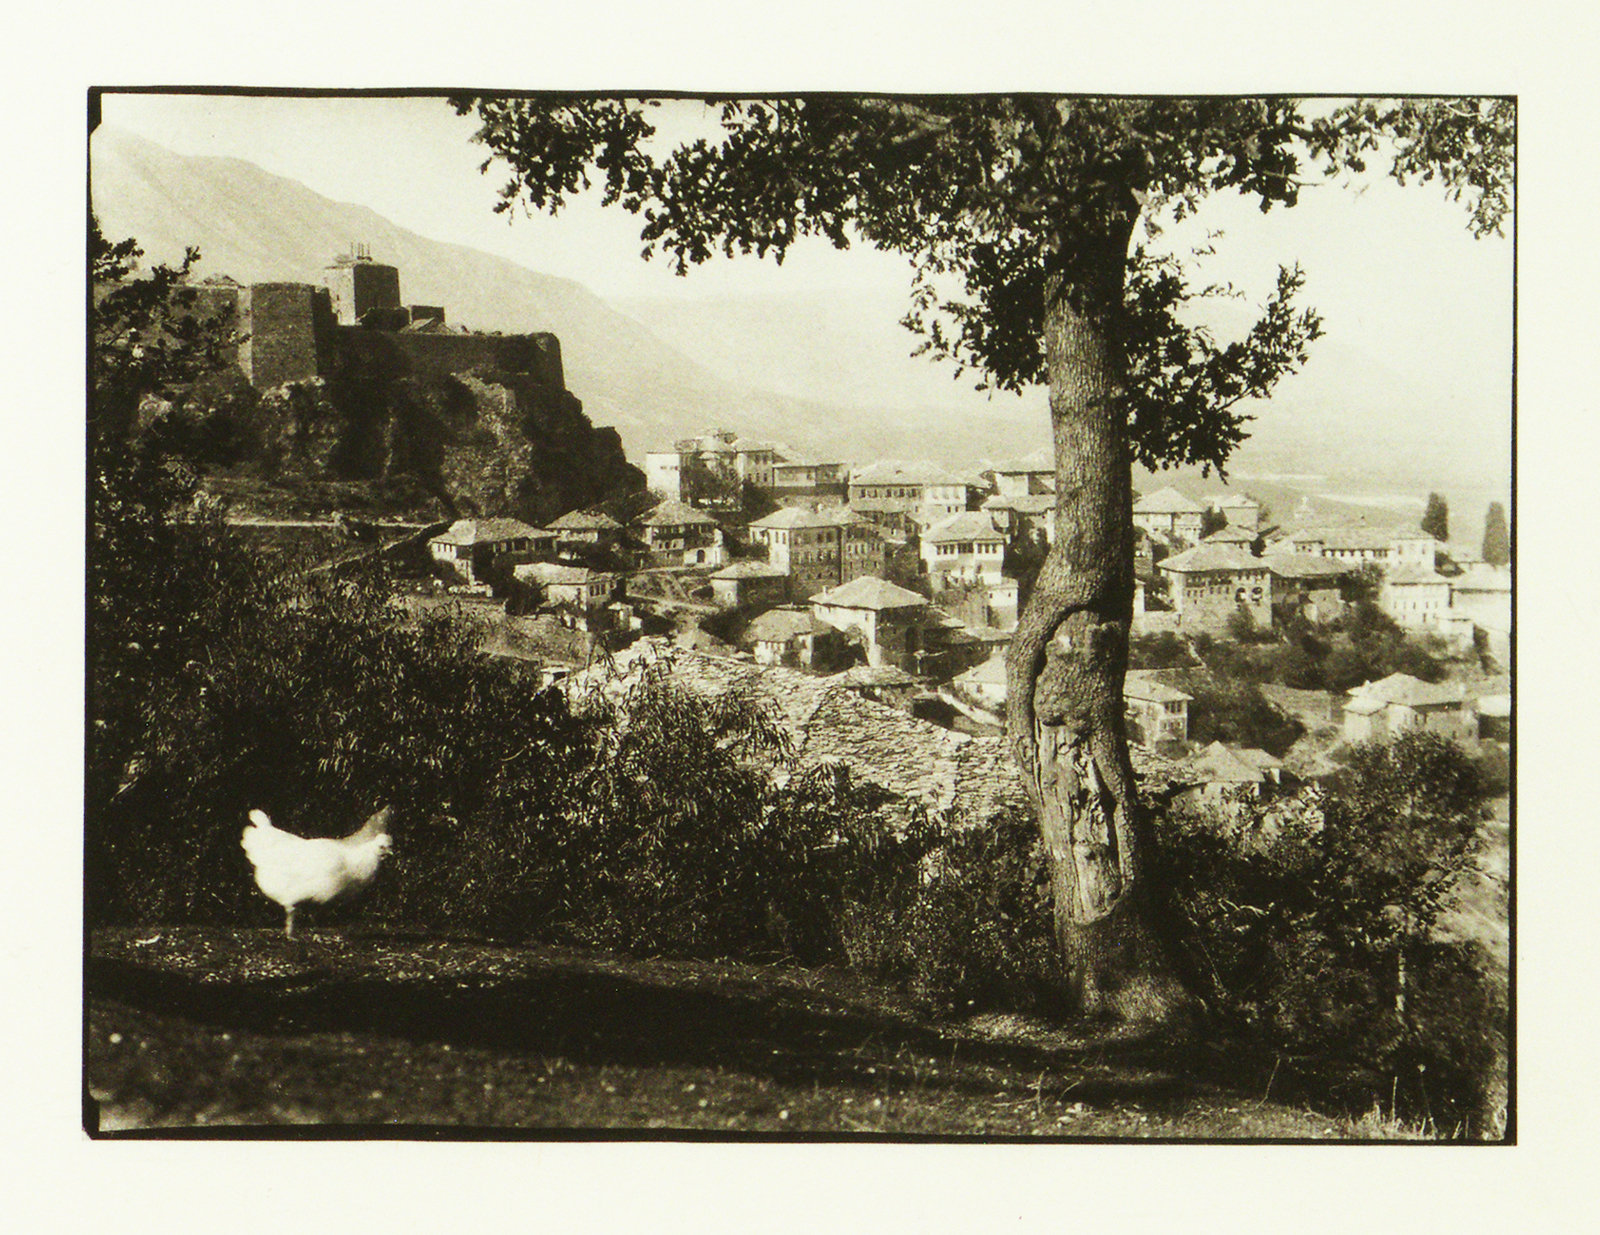 Panoramic view of Gjirokastër, 1931, Erich Andres, National Library of Albania, Public Domain Mark